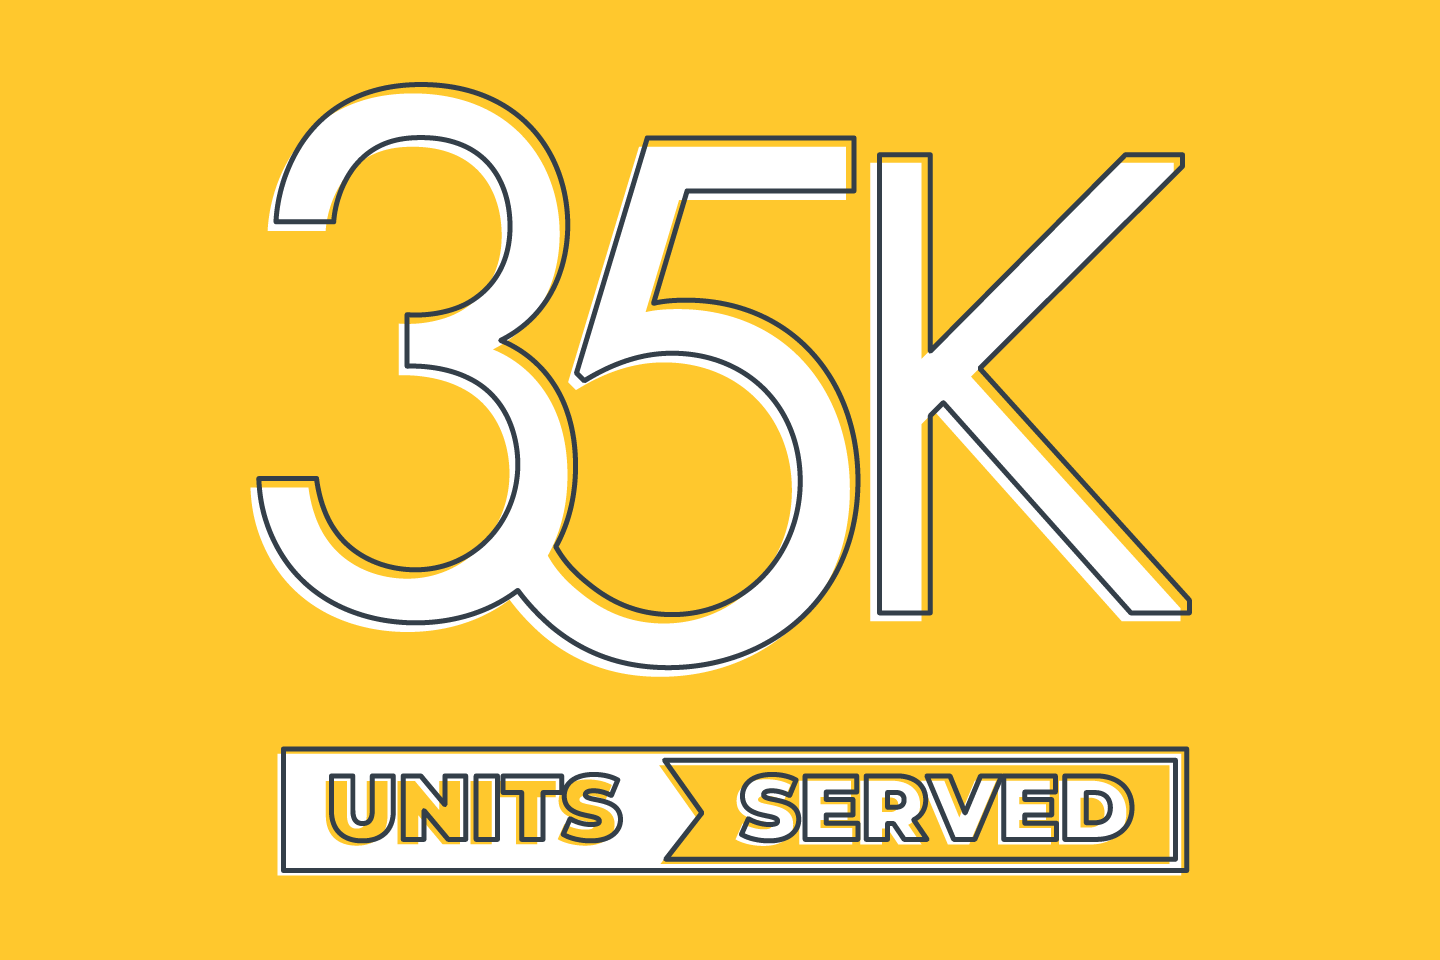 28k units of service - we did it! Giving Network post